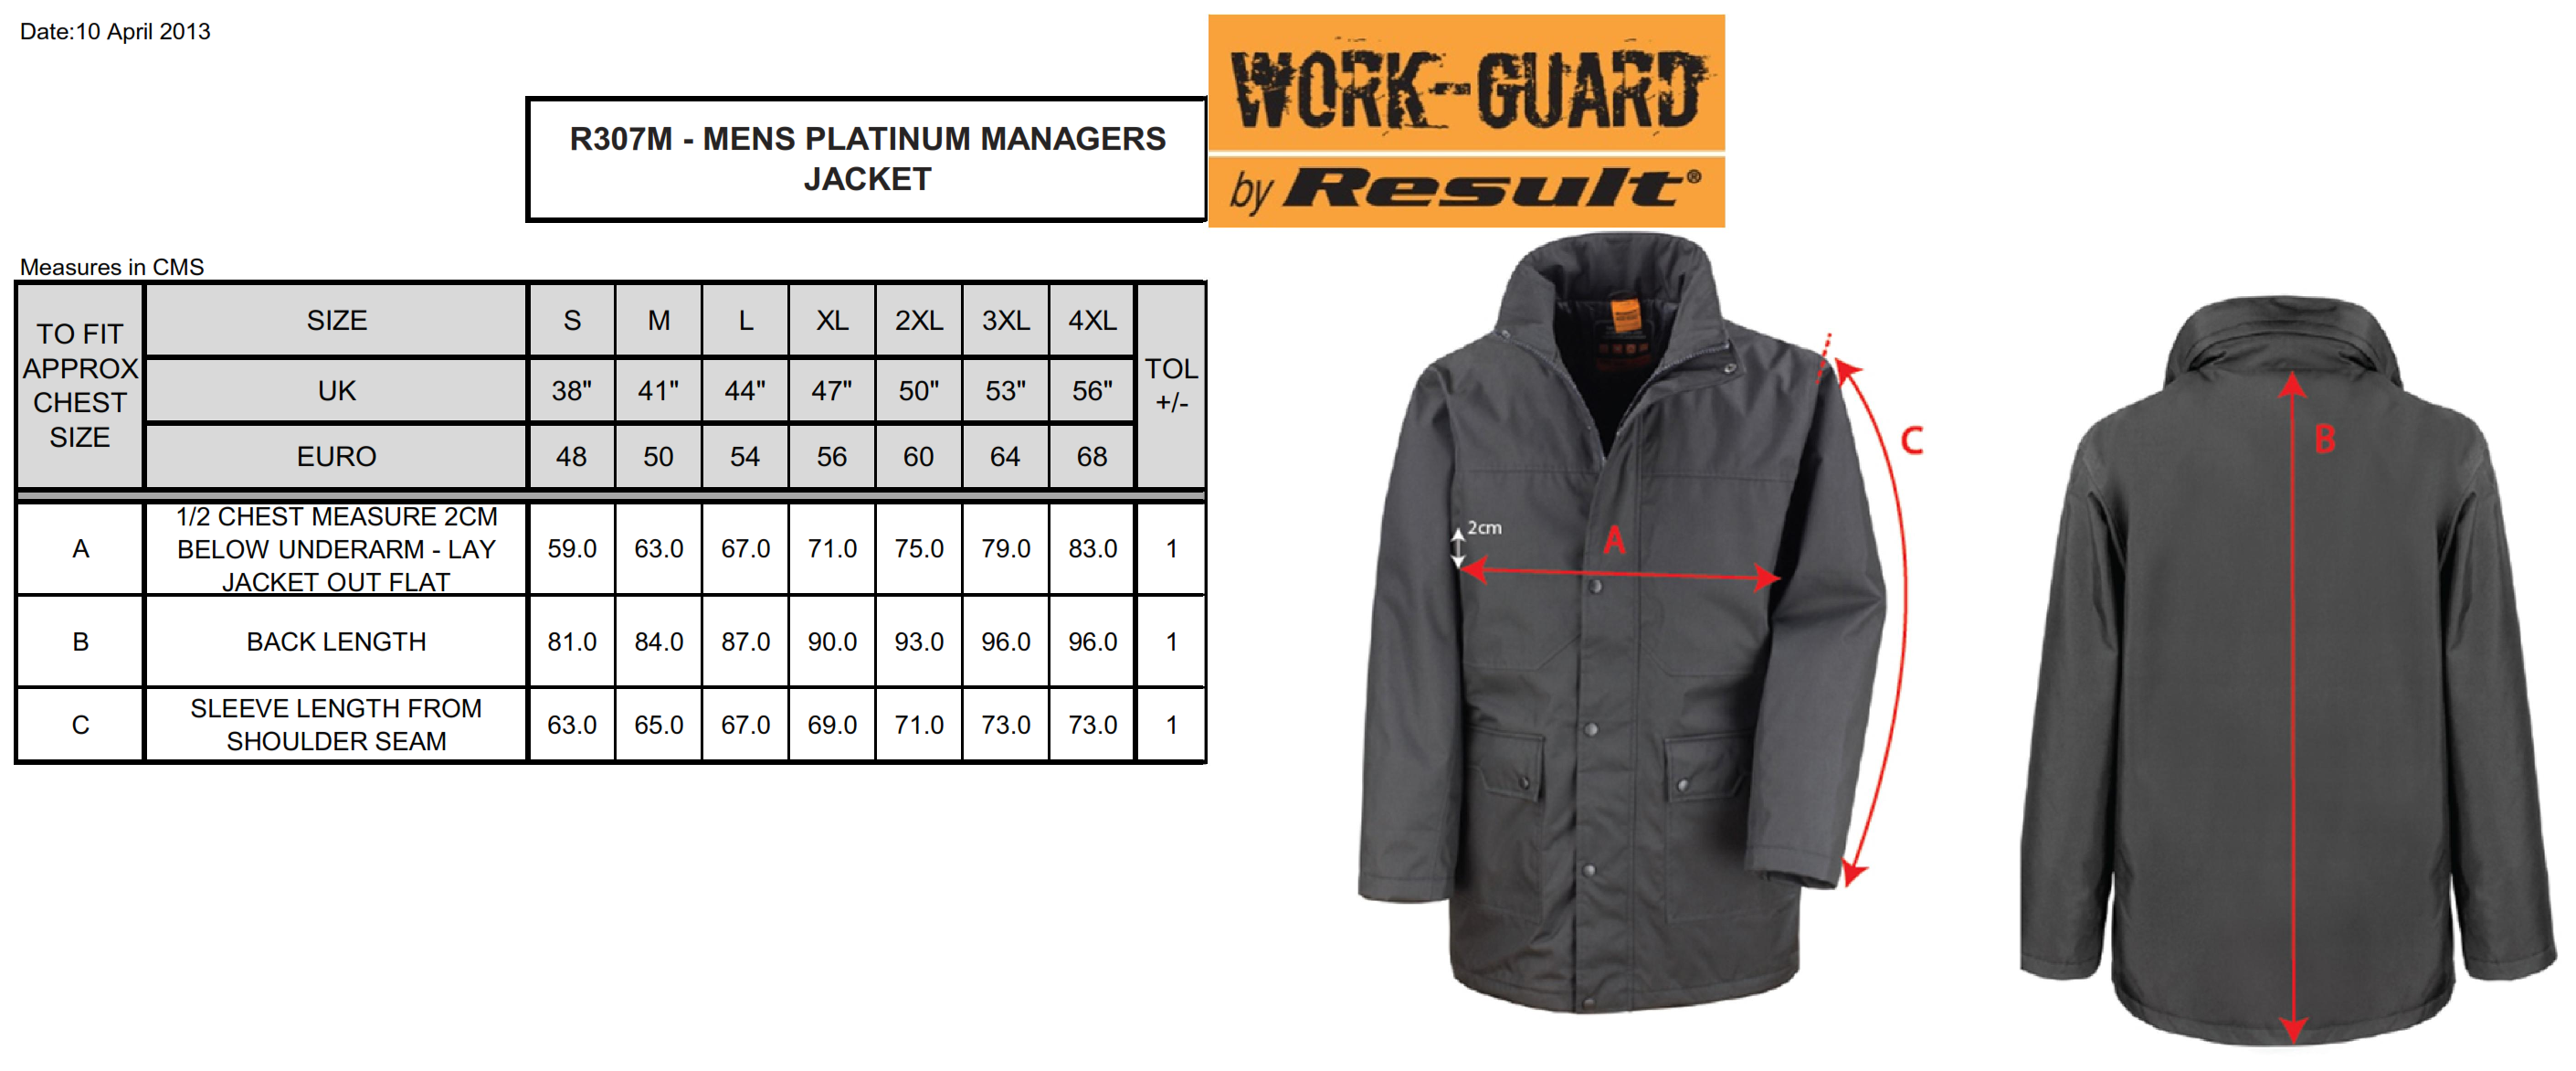 Result: Platinum Managers Jacket R307M